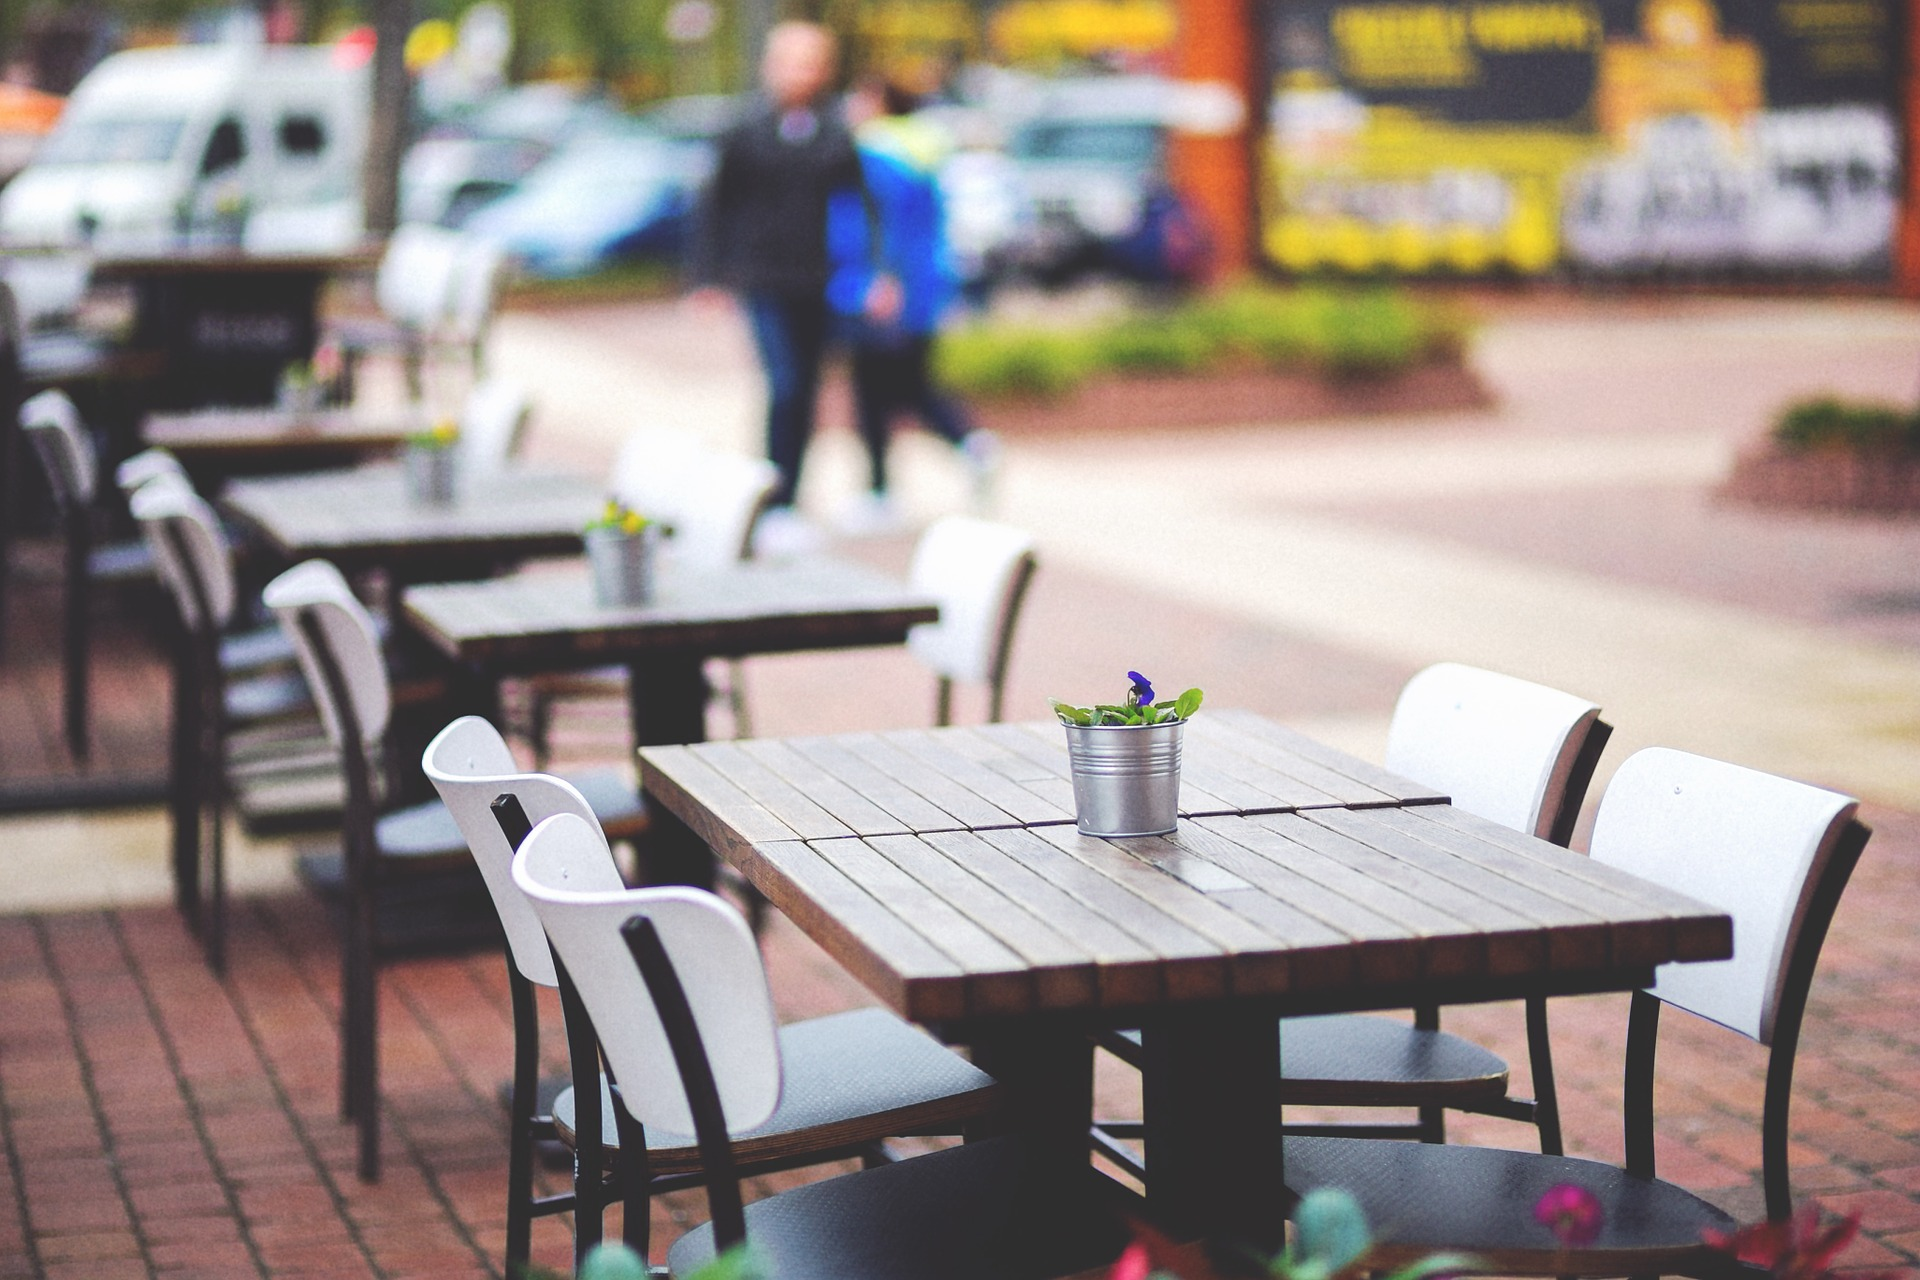 Community Businesses and Restaurants